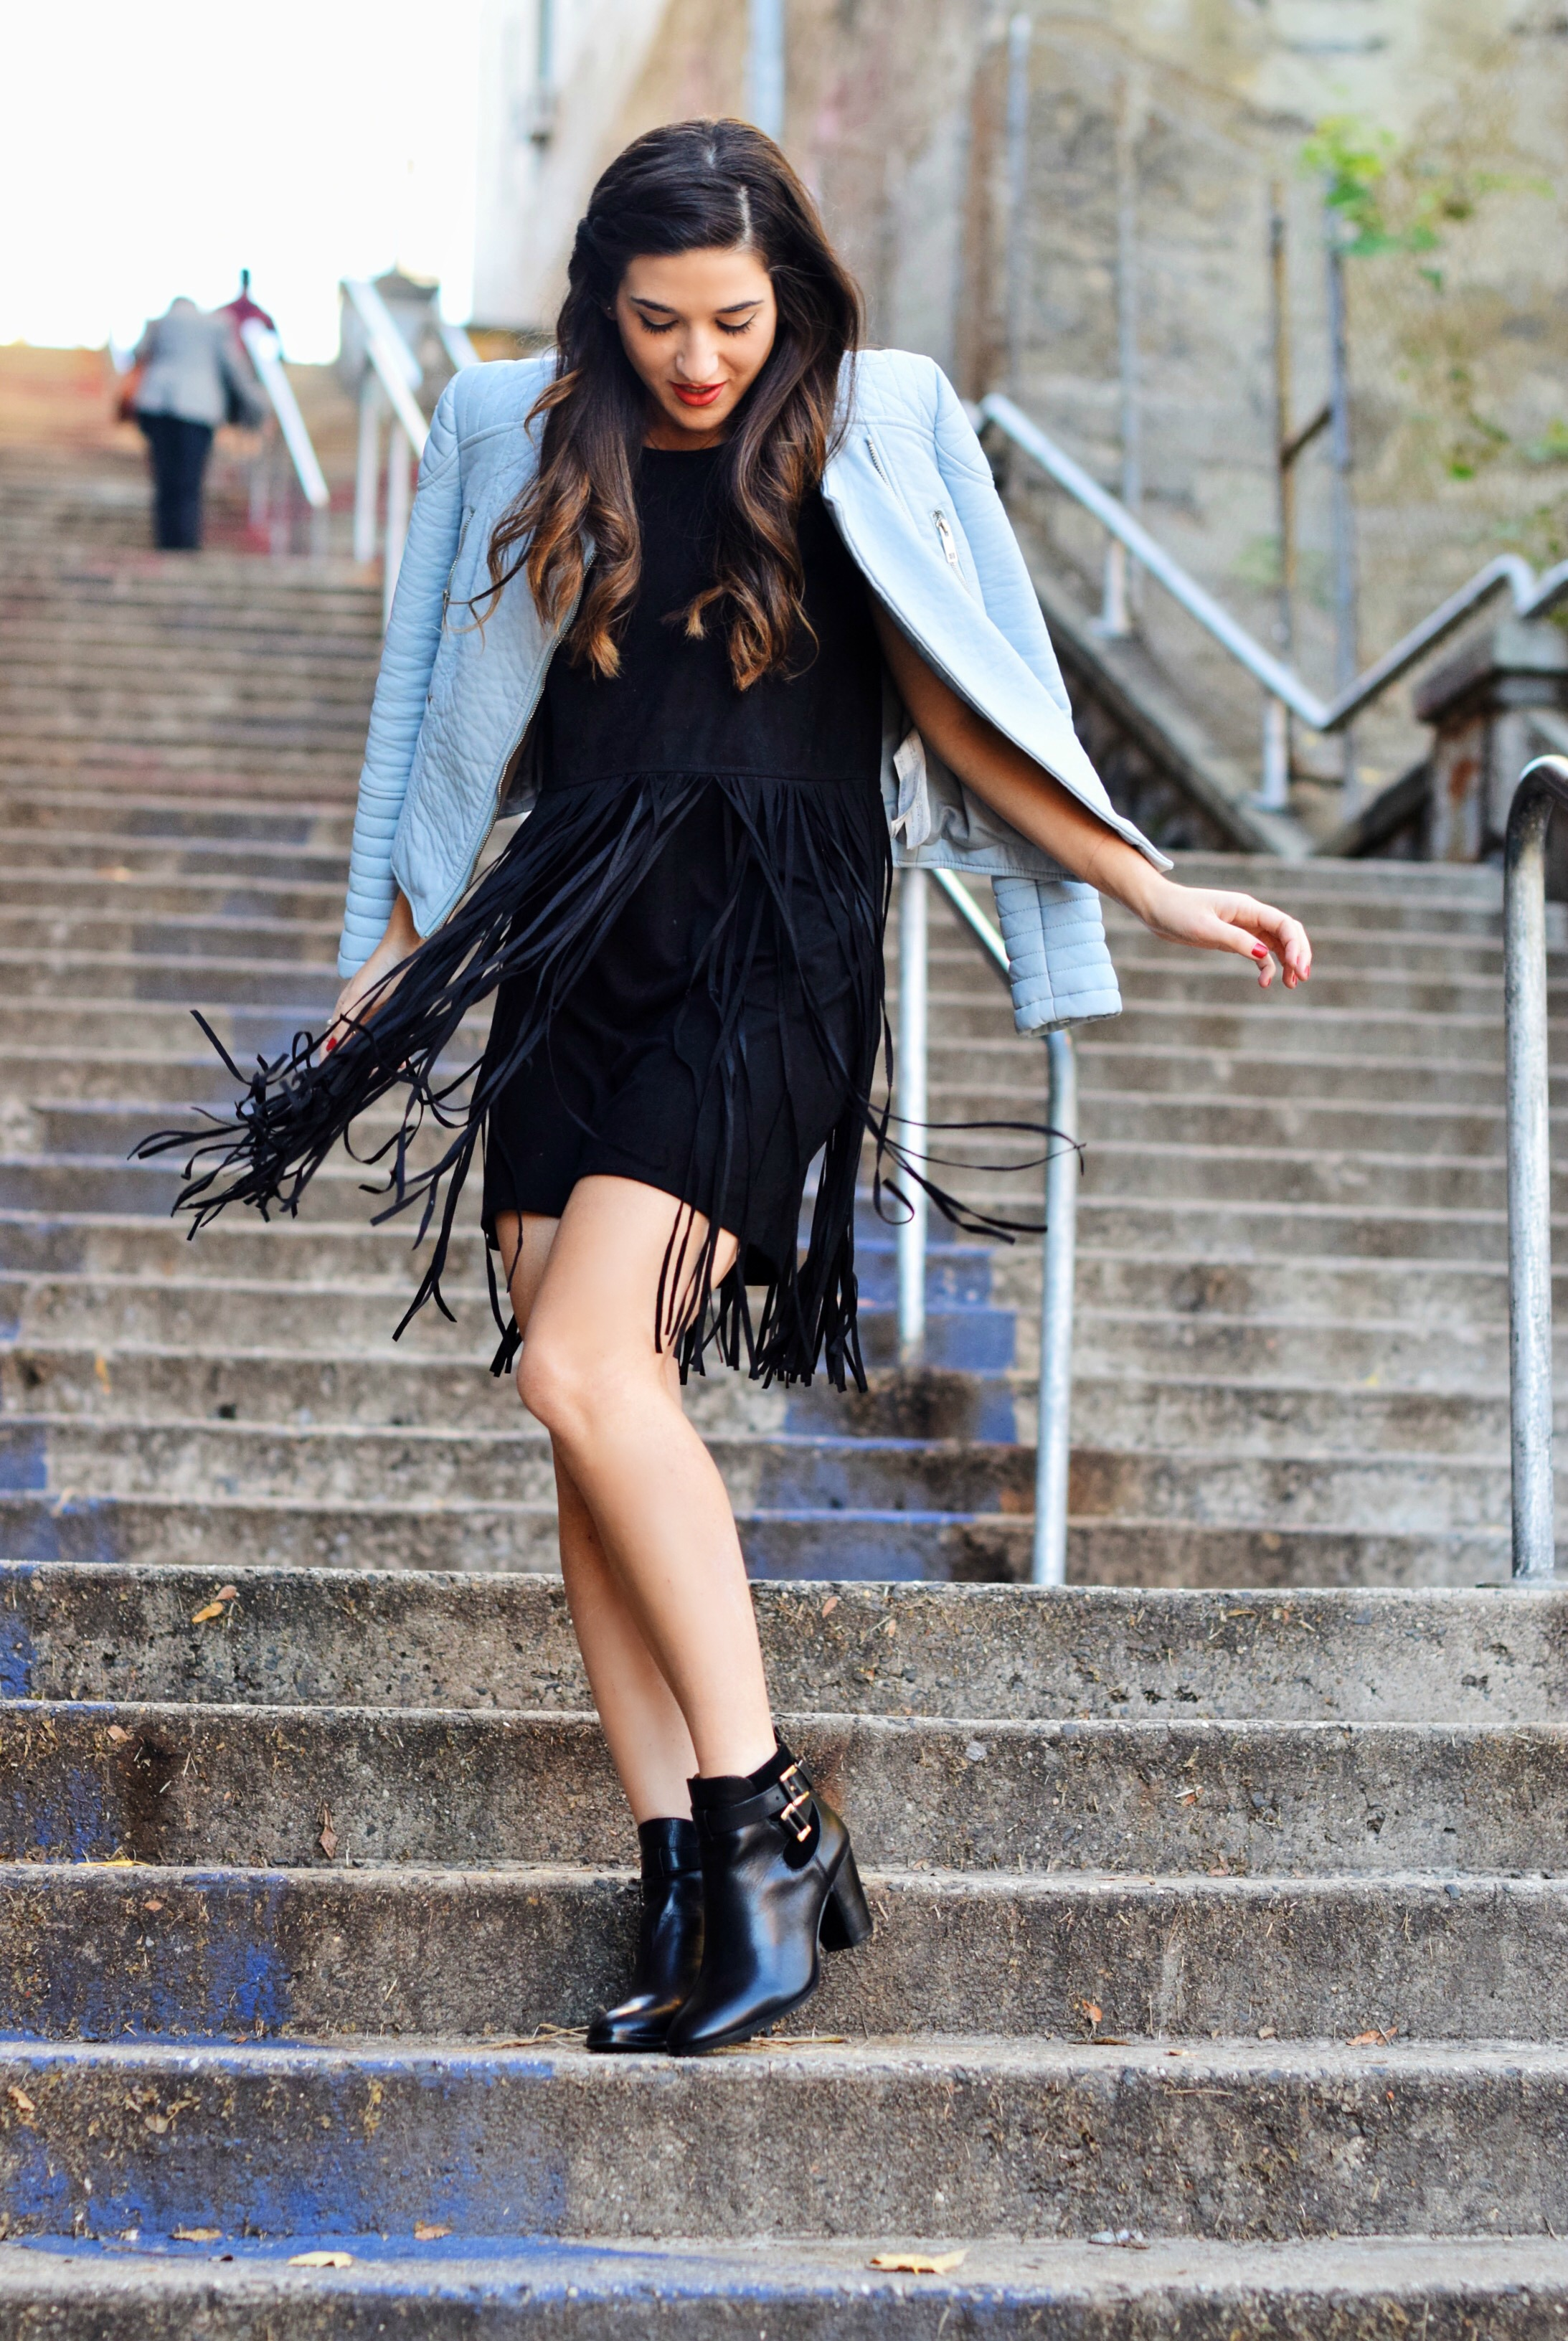 Black Fringe Dress Trèscool Louboutins & Love Fashion Blog Esther Santer NYC Street Style Blogger Baby Blue Leather Jacket Zara Hair Girl Model Photoshoot Booties Nordstrom Outfit OOTD Pretty Red Nail Polish Trendy Shoes Winter Fall Look  Shop Inspo.jpg